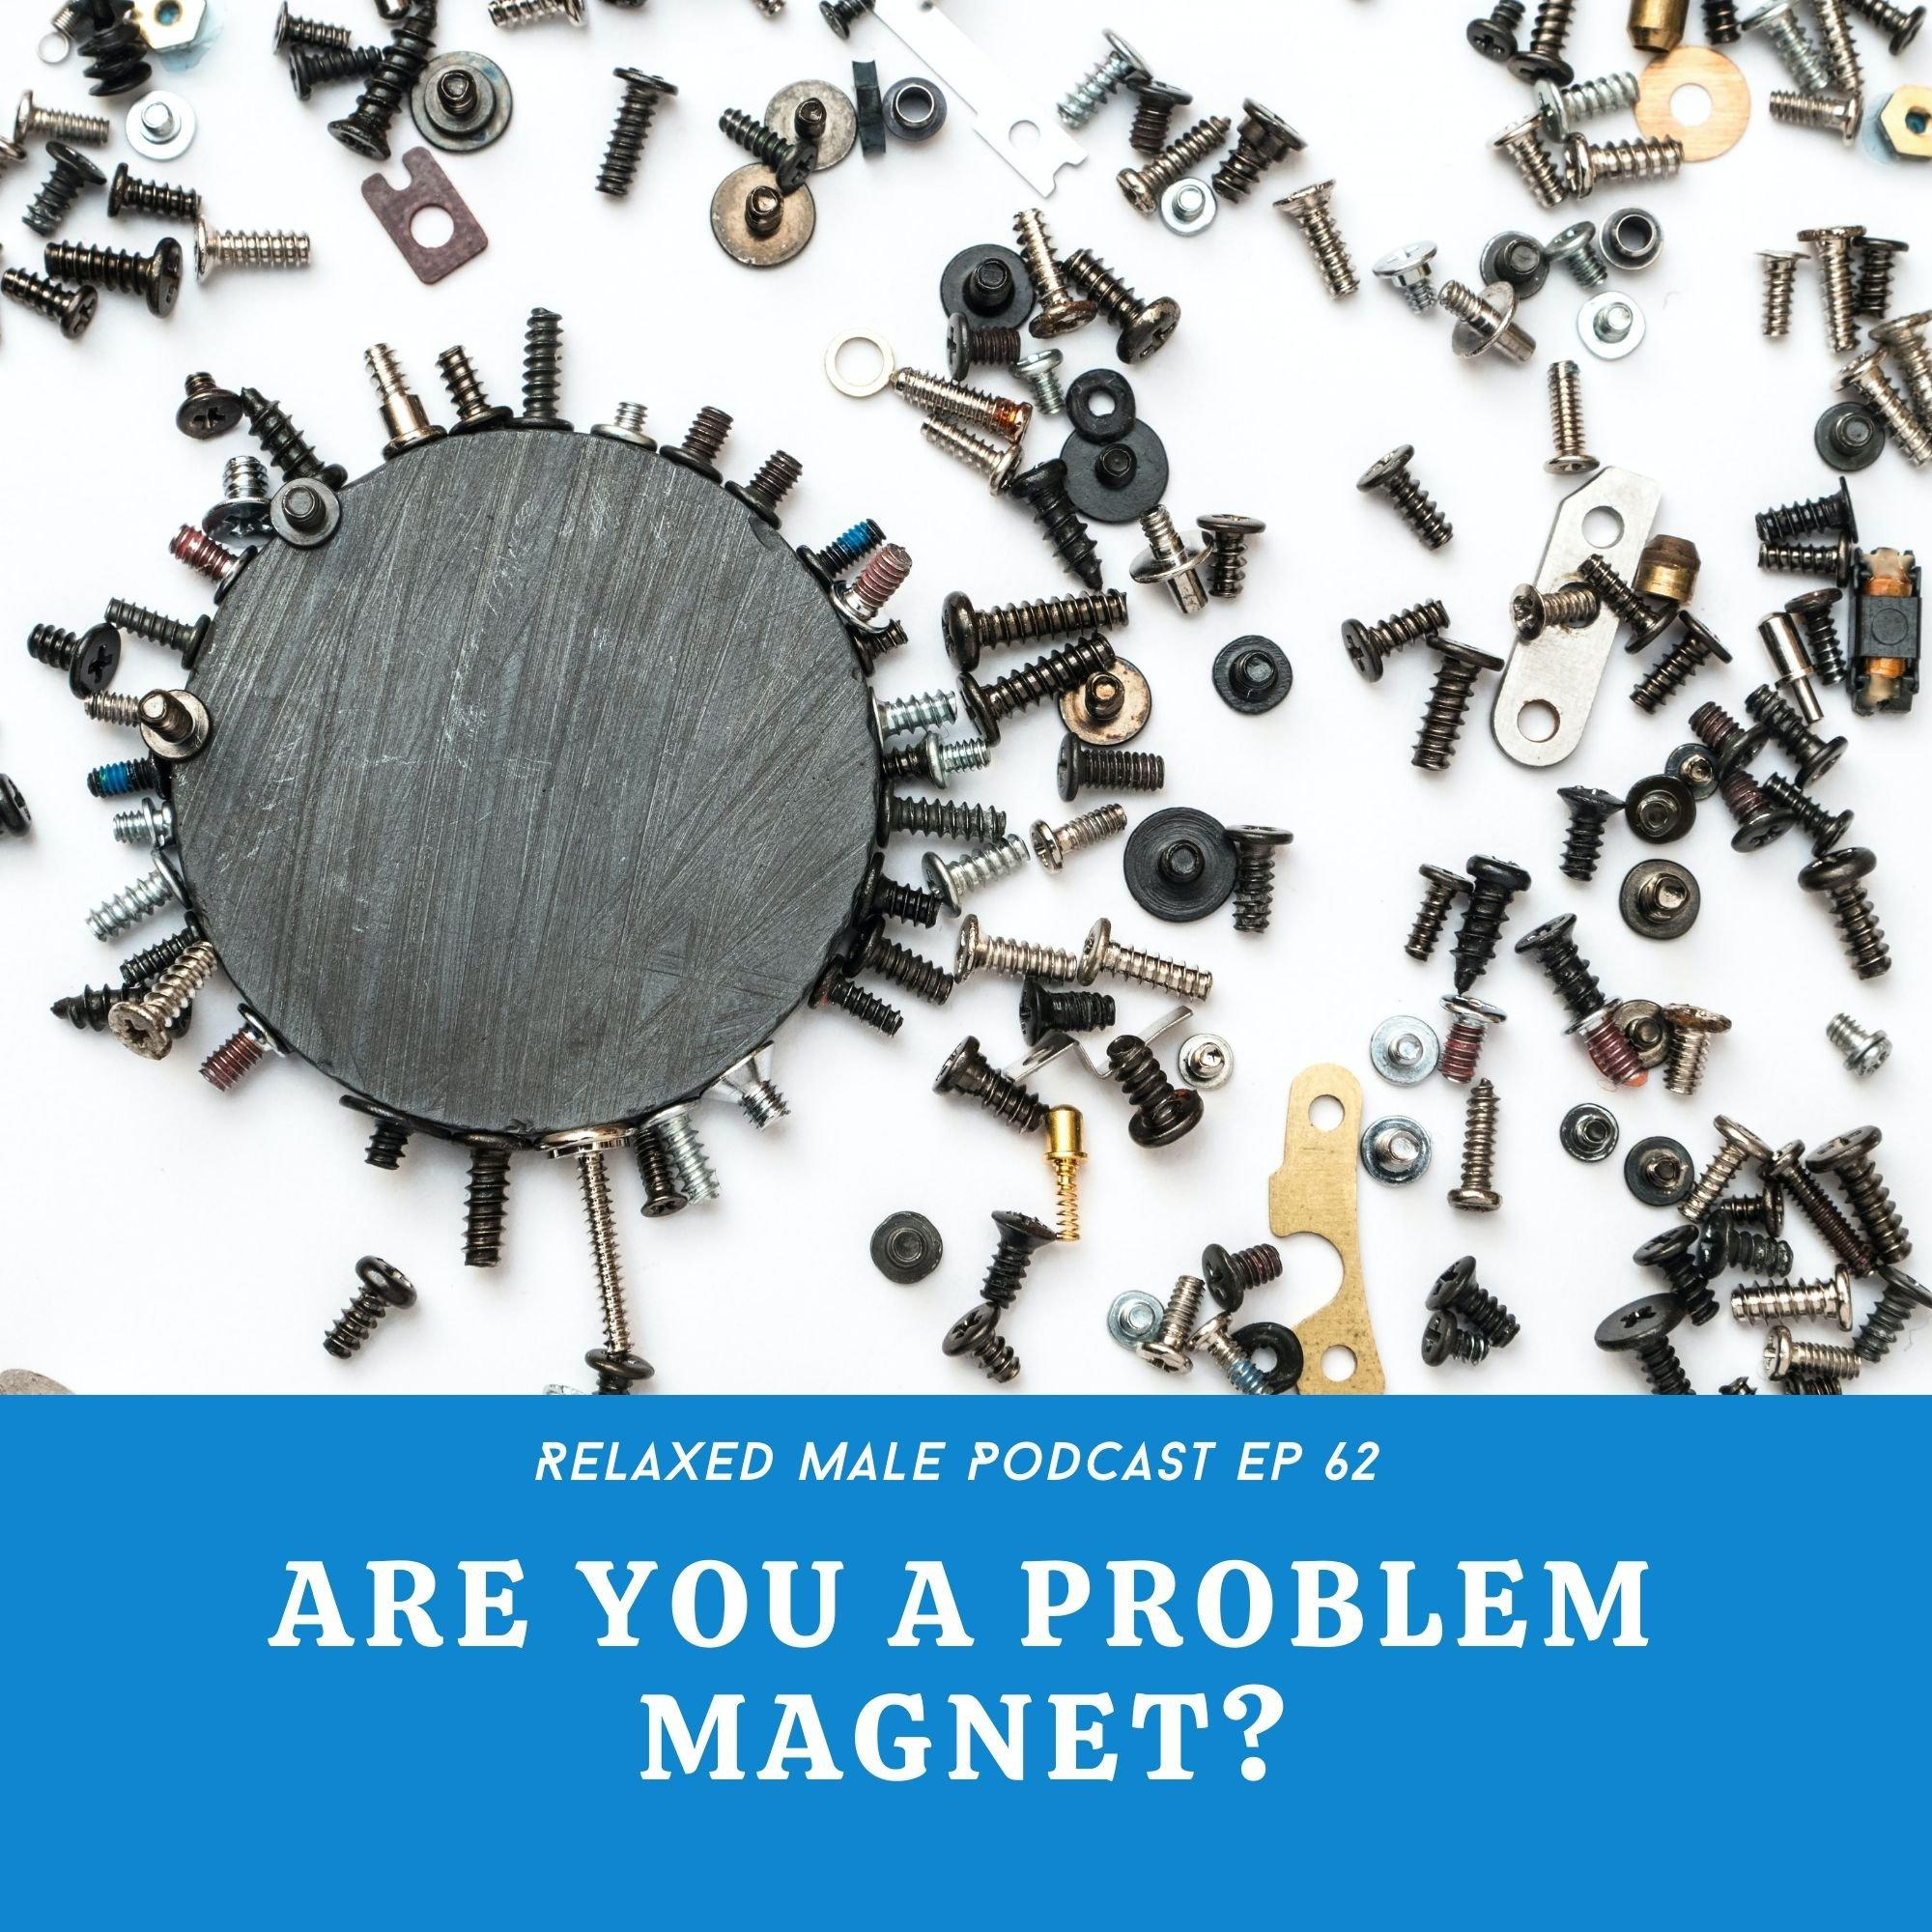 Are You a Problem Magnet?